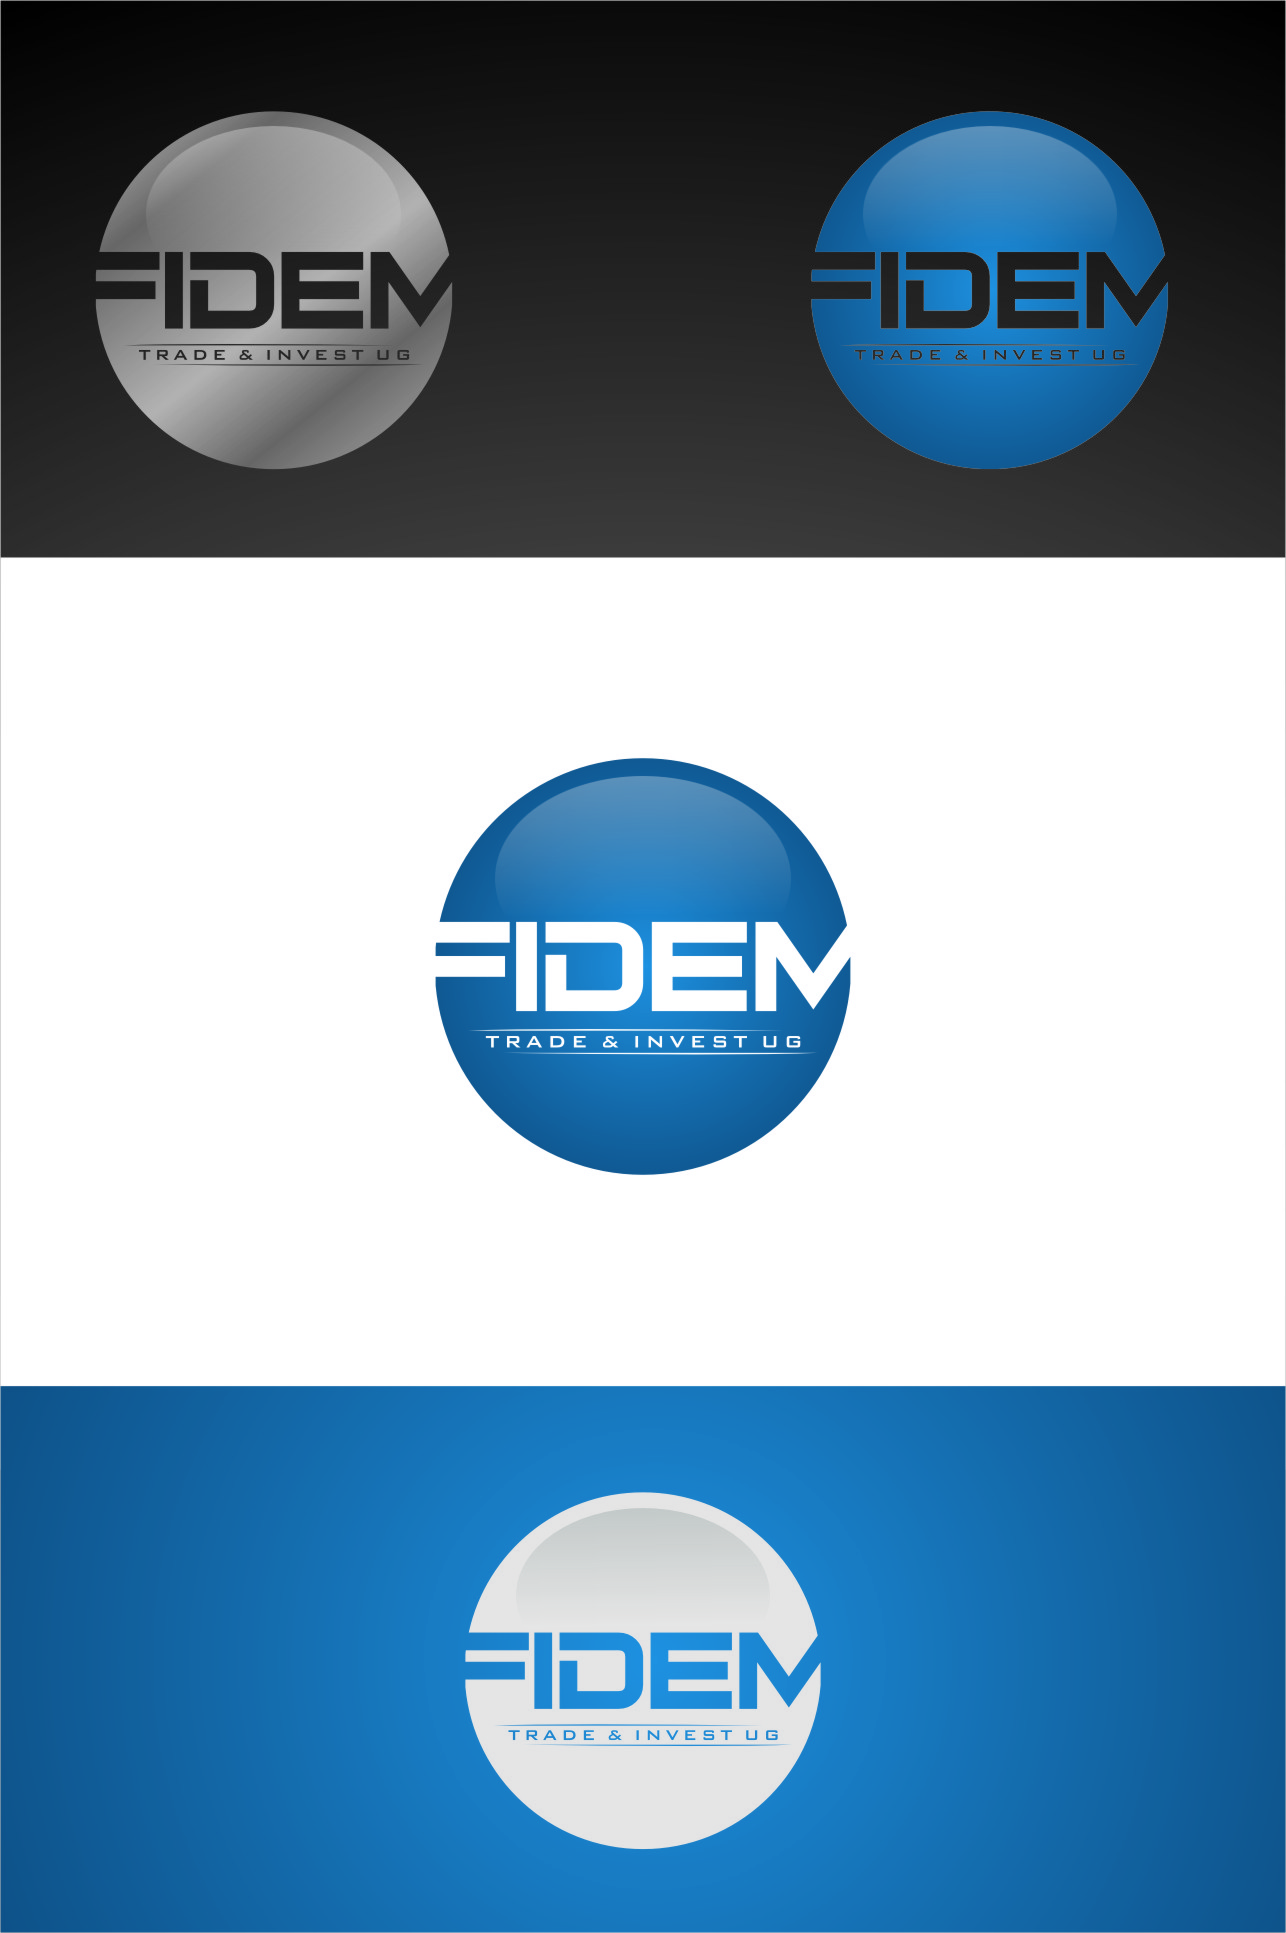 Logo Design by RasYa Muhammad Athaya - Entry No. 359 in the Logo Design Contest Professional Logo Design for FIDEM Trade & Invest UG.